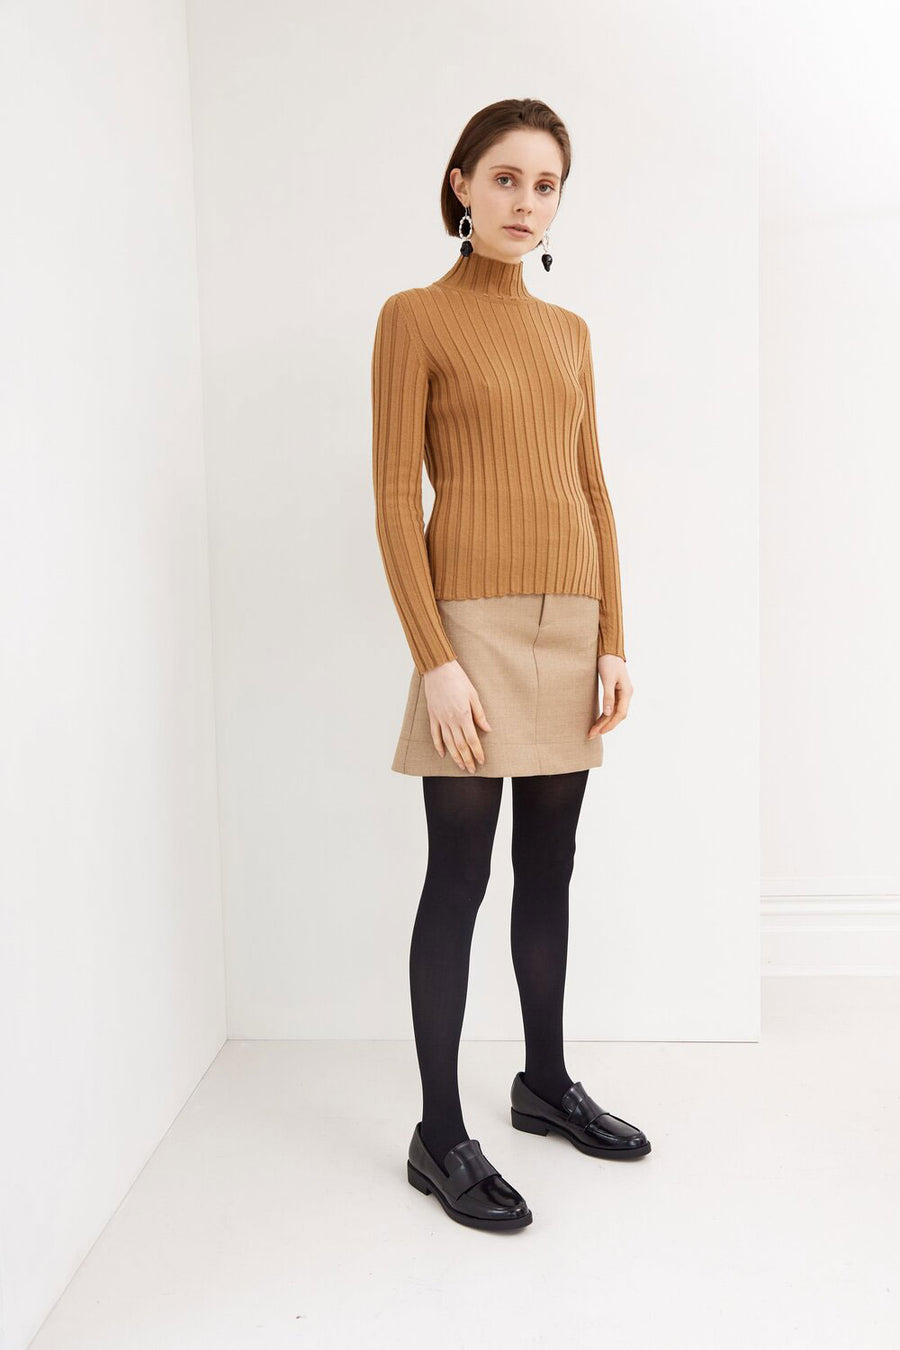 Autumn Knit | Tan | Tops NZ | IDAE NZ | Black Box Boutique Auckland | Womens Fashion NZ